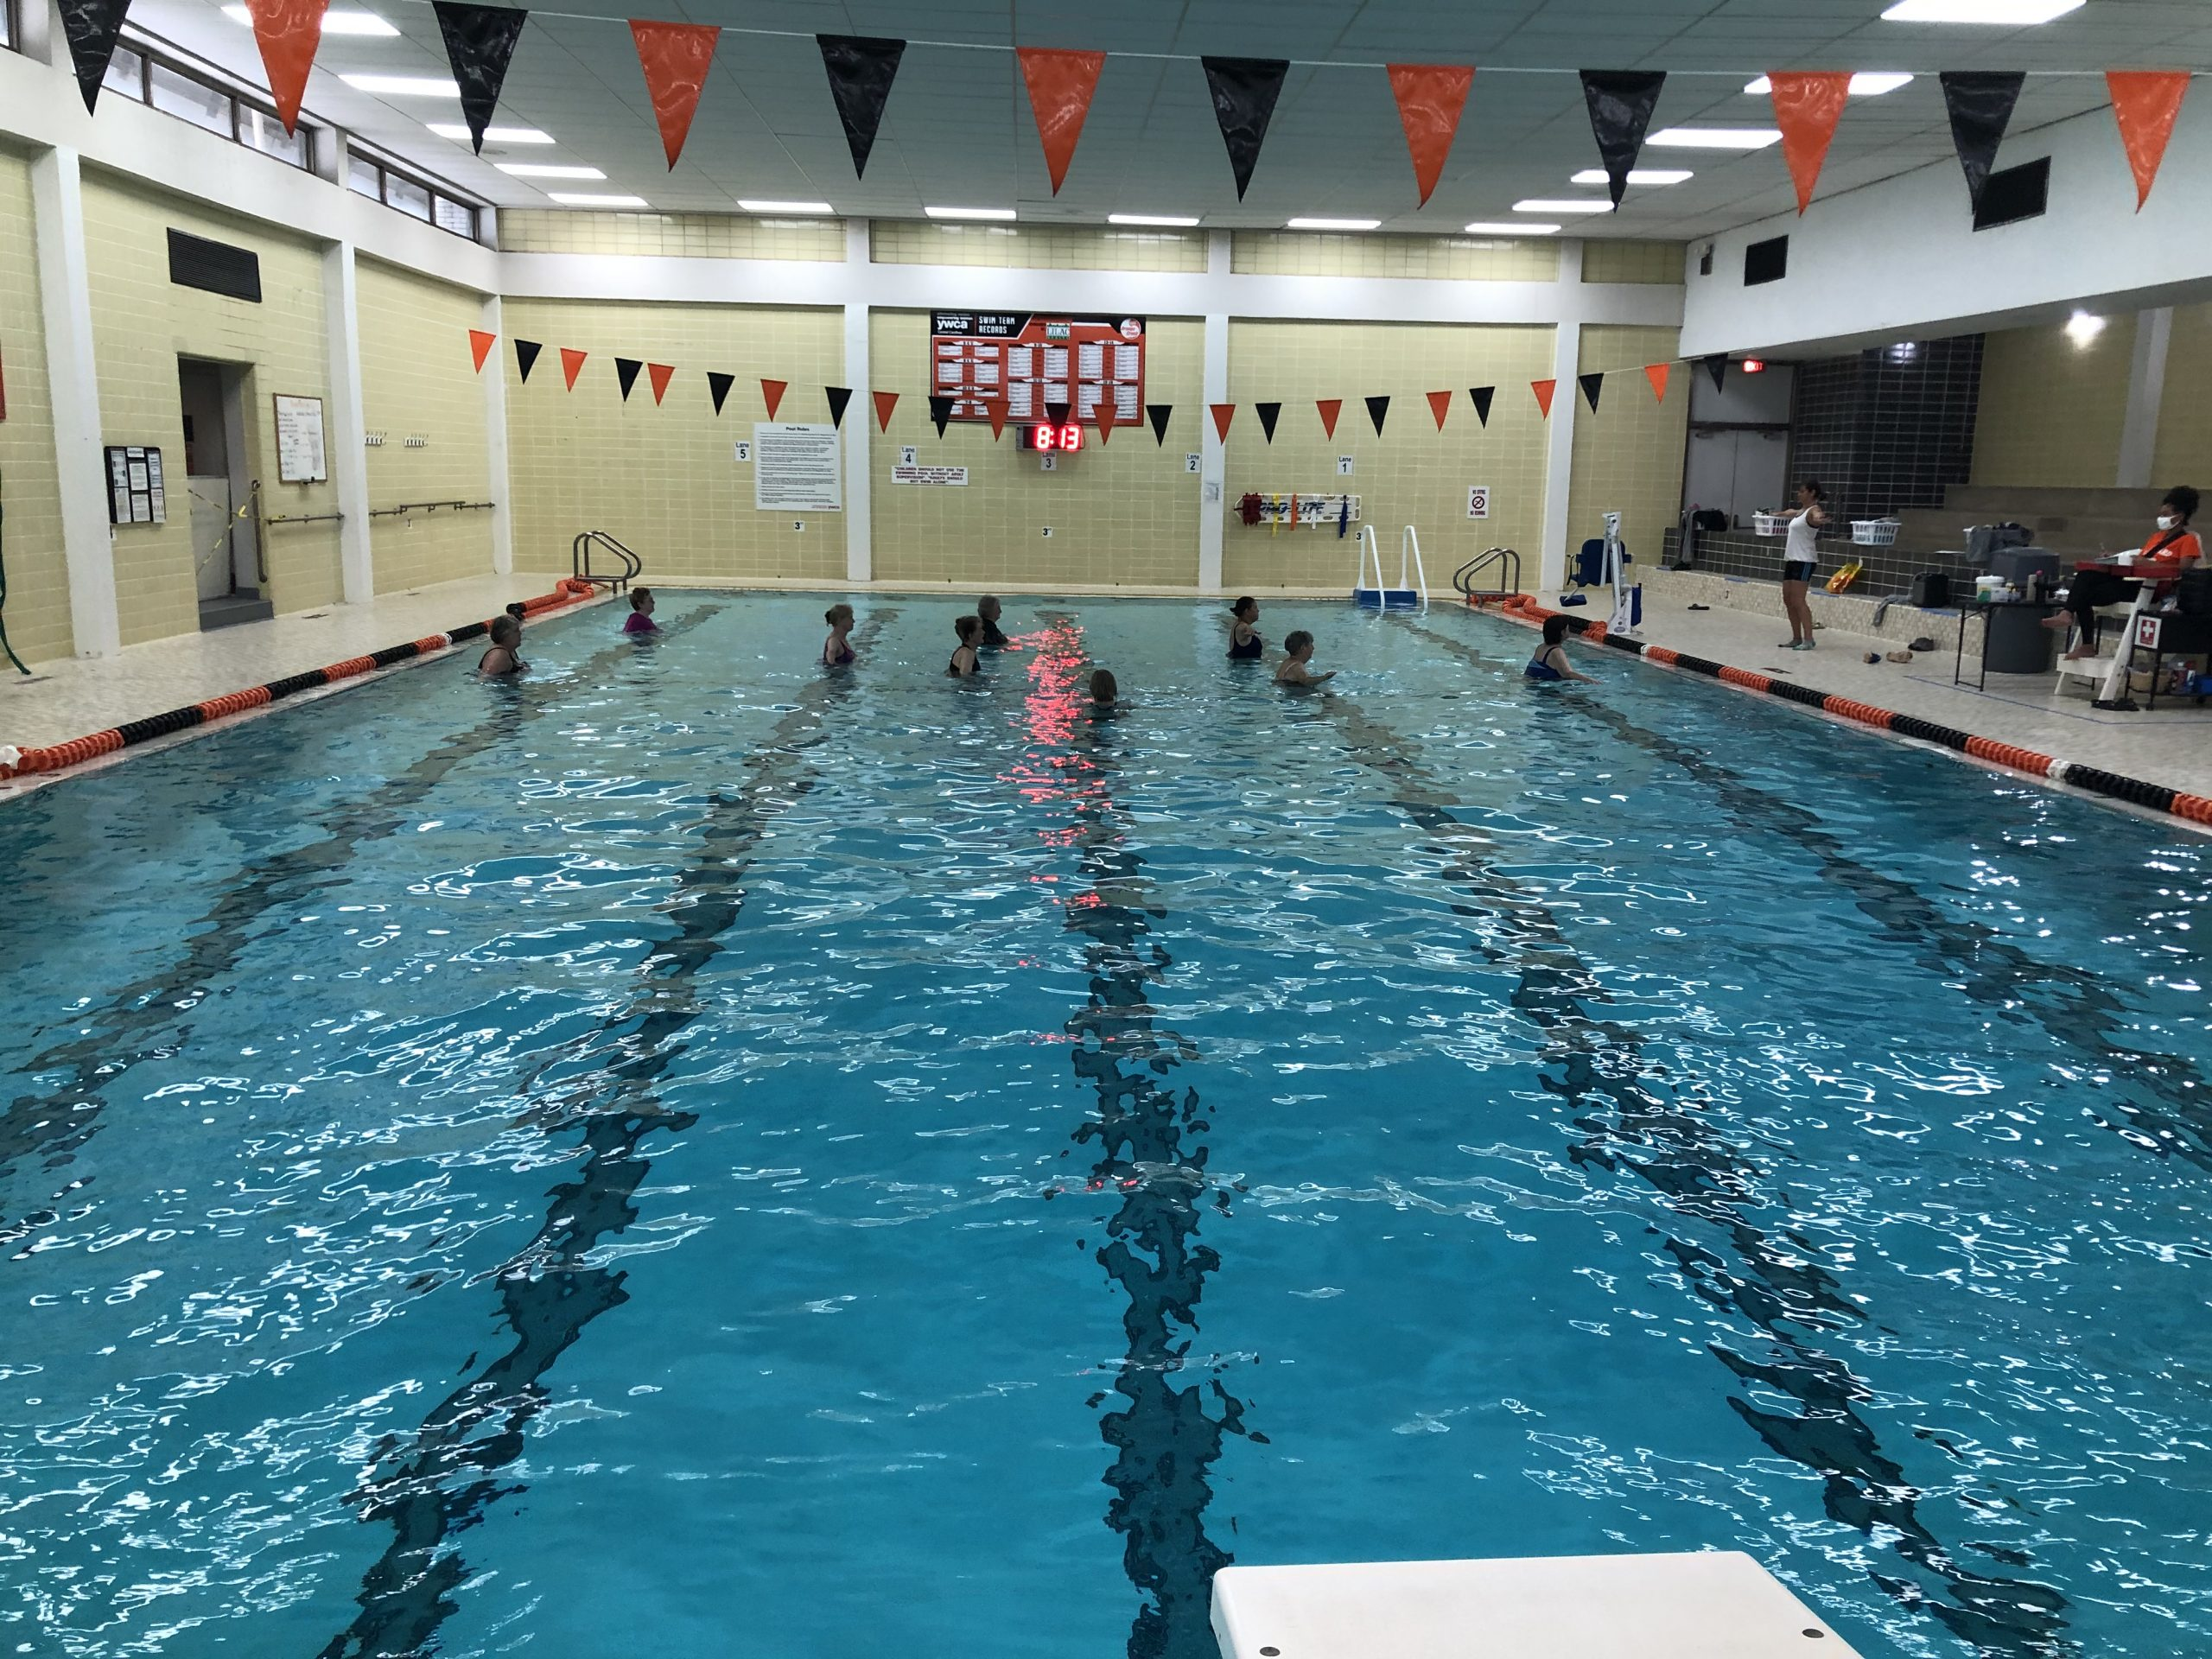 COVID19, social distancing, fitness center, YWCA, gym, co-ed gym, workout, indoor pool, water aerobics